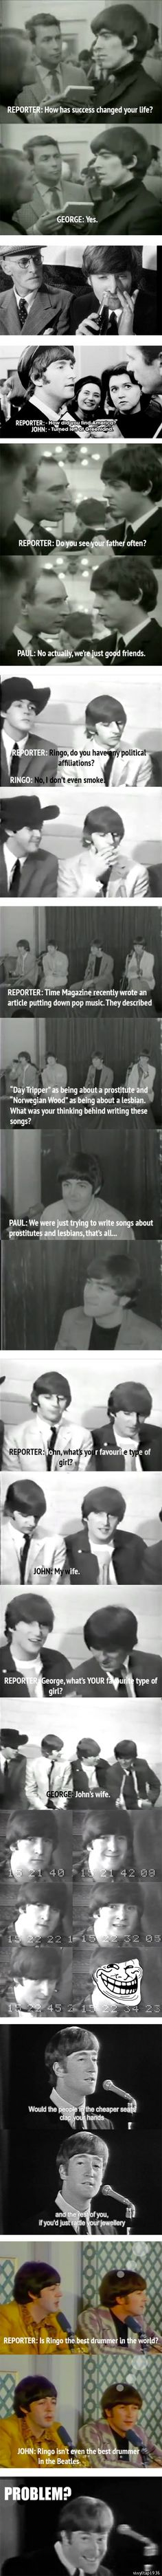 The Beatles = best band of all time! Haha some of these are hilarious